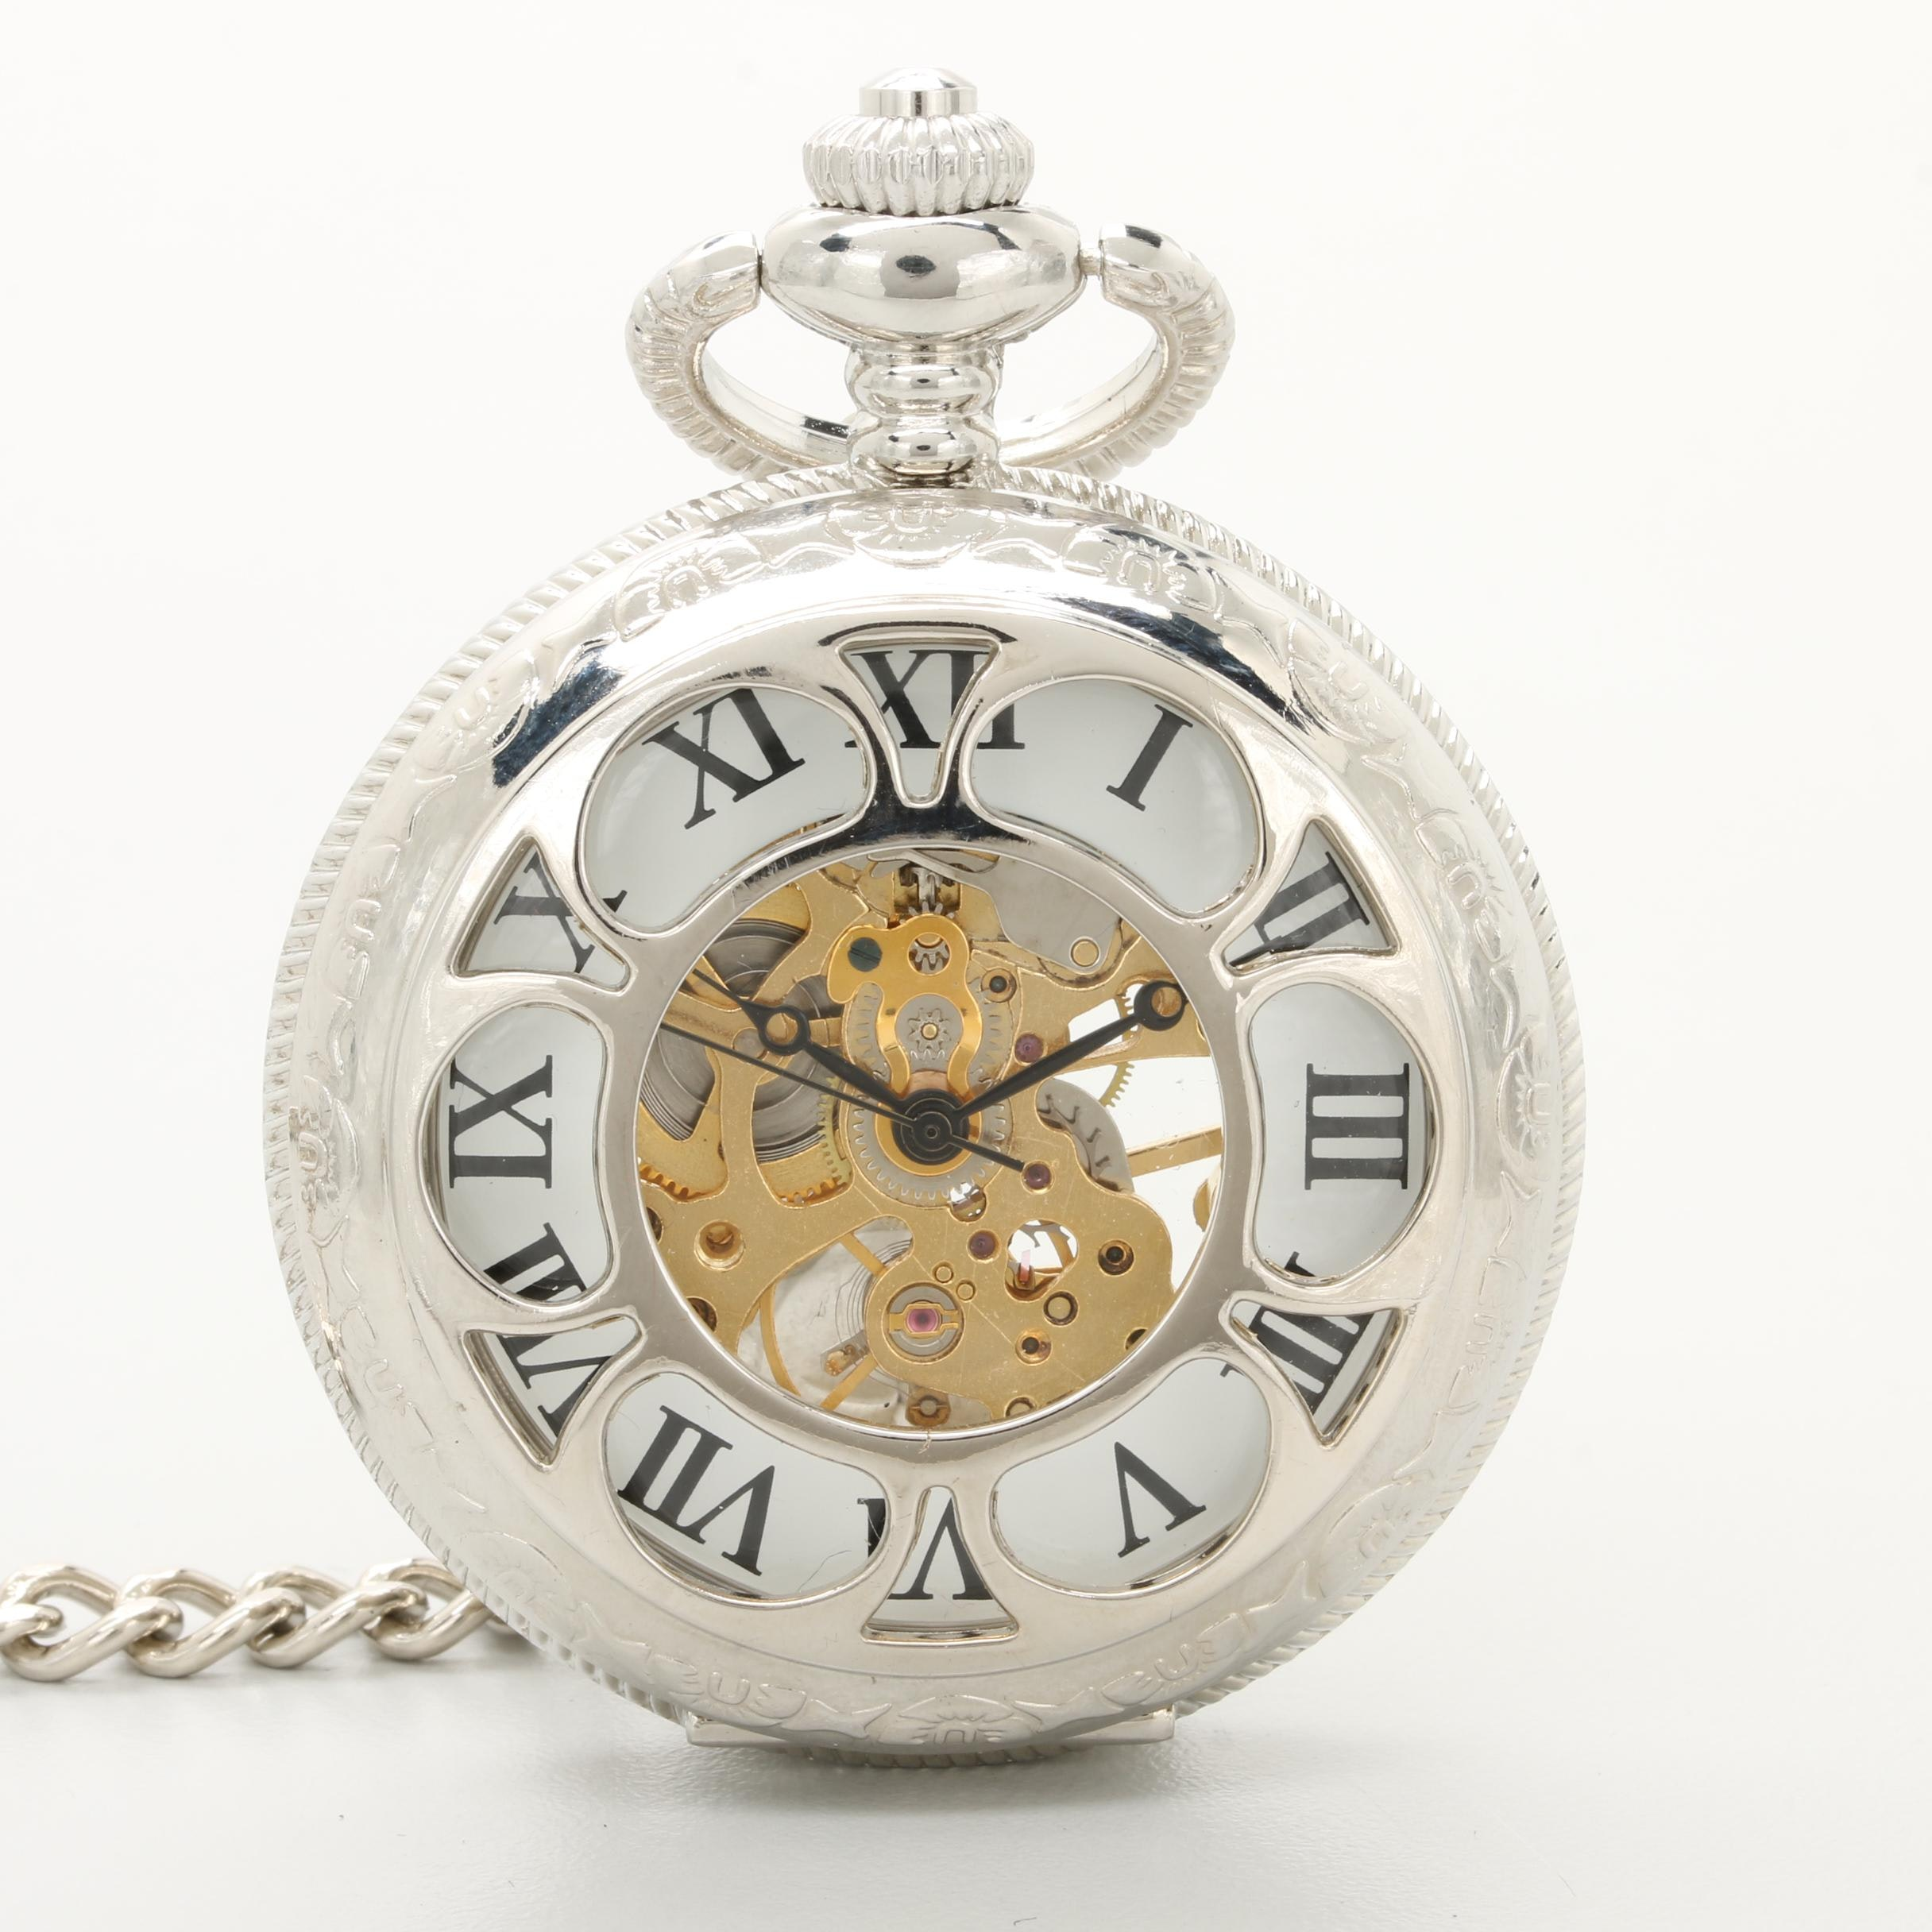 Exhibition Style Pocket Watch with Partial Skeleton Cover